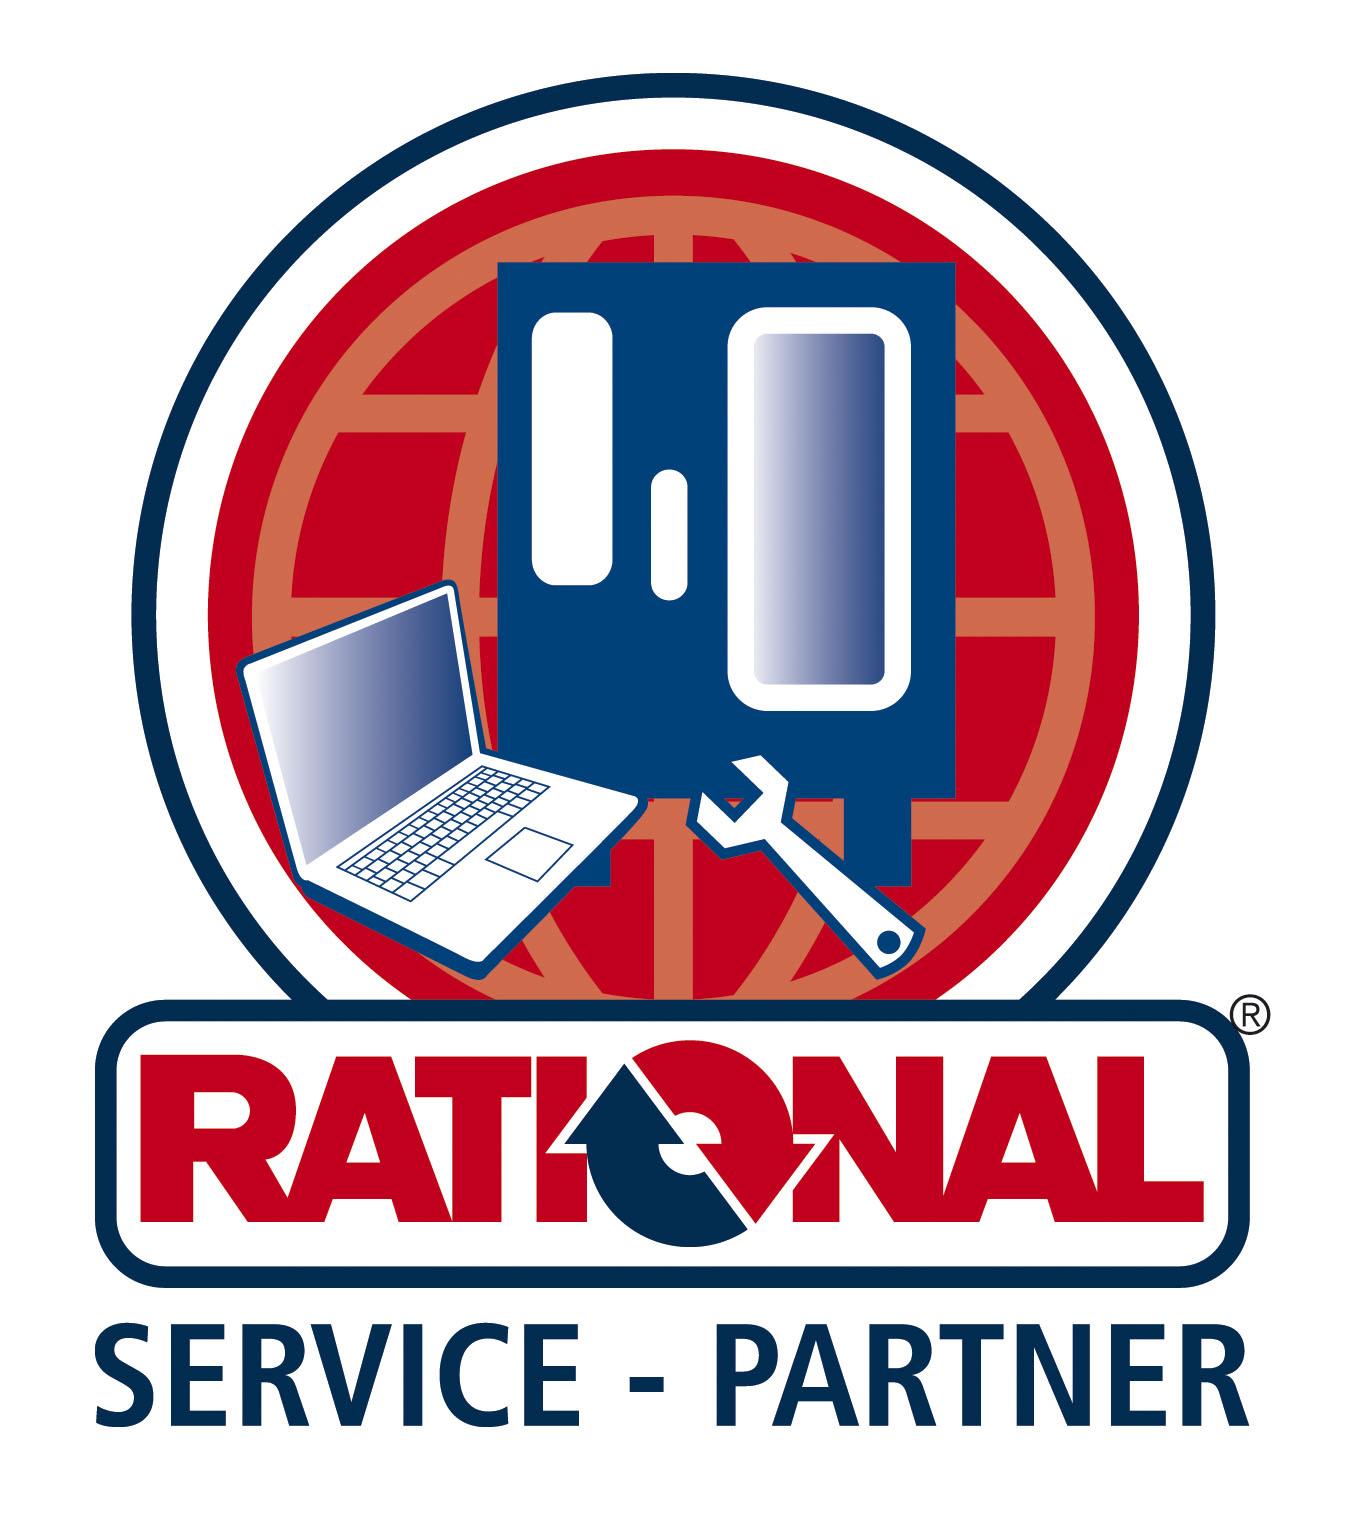 RATIONAL Servicepartner